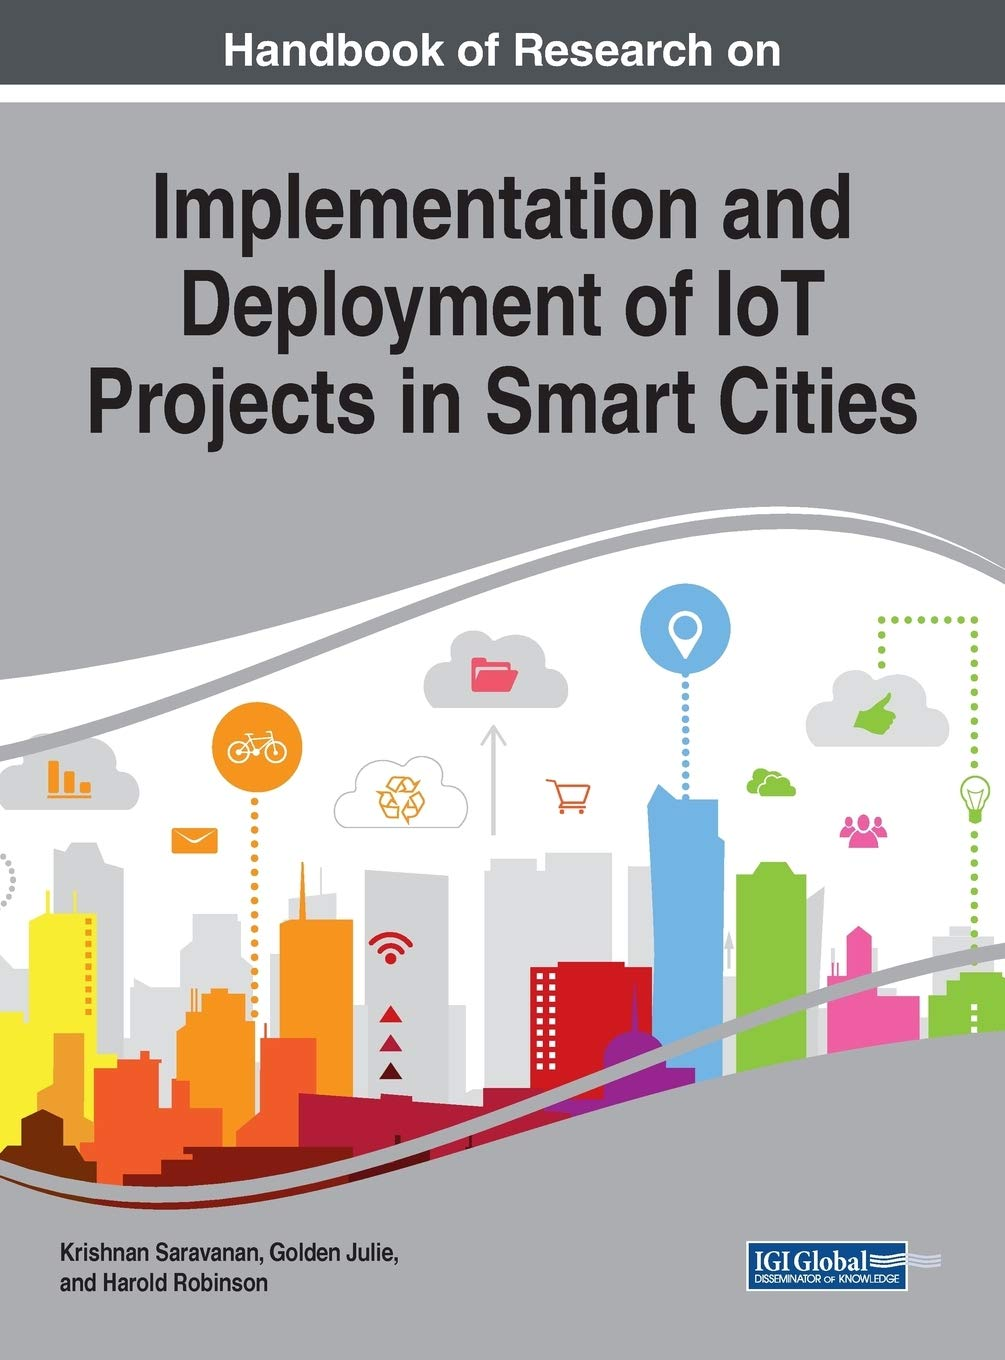 Handbook of Research on Implementation and Deployment of IoT Projects in Smart Cities (Advances in Civil and Industrial Engineering)